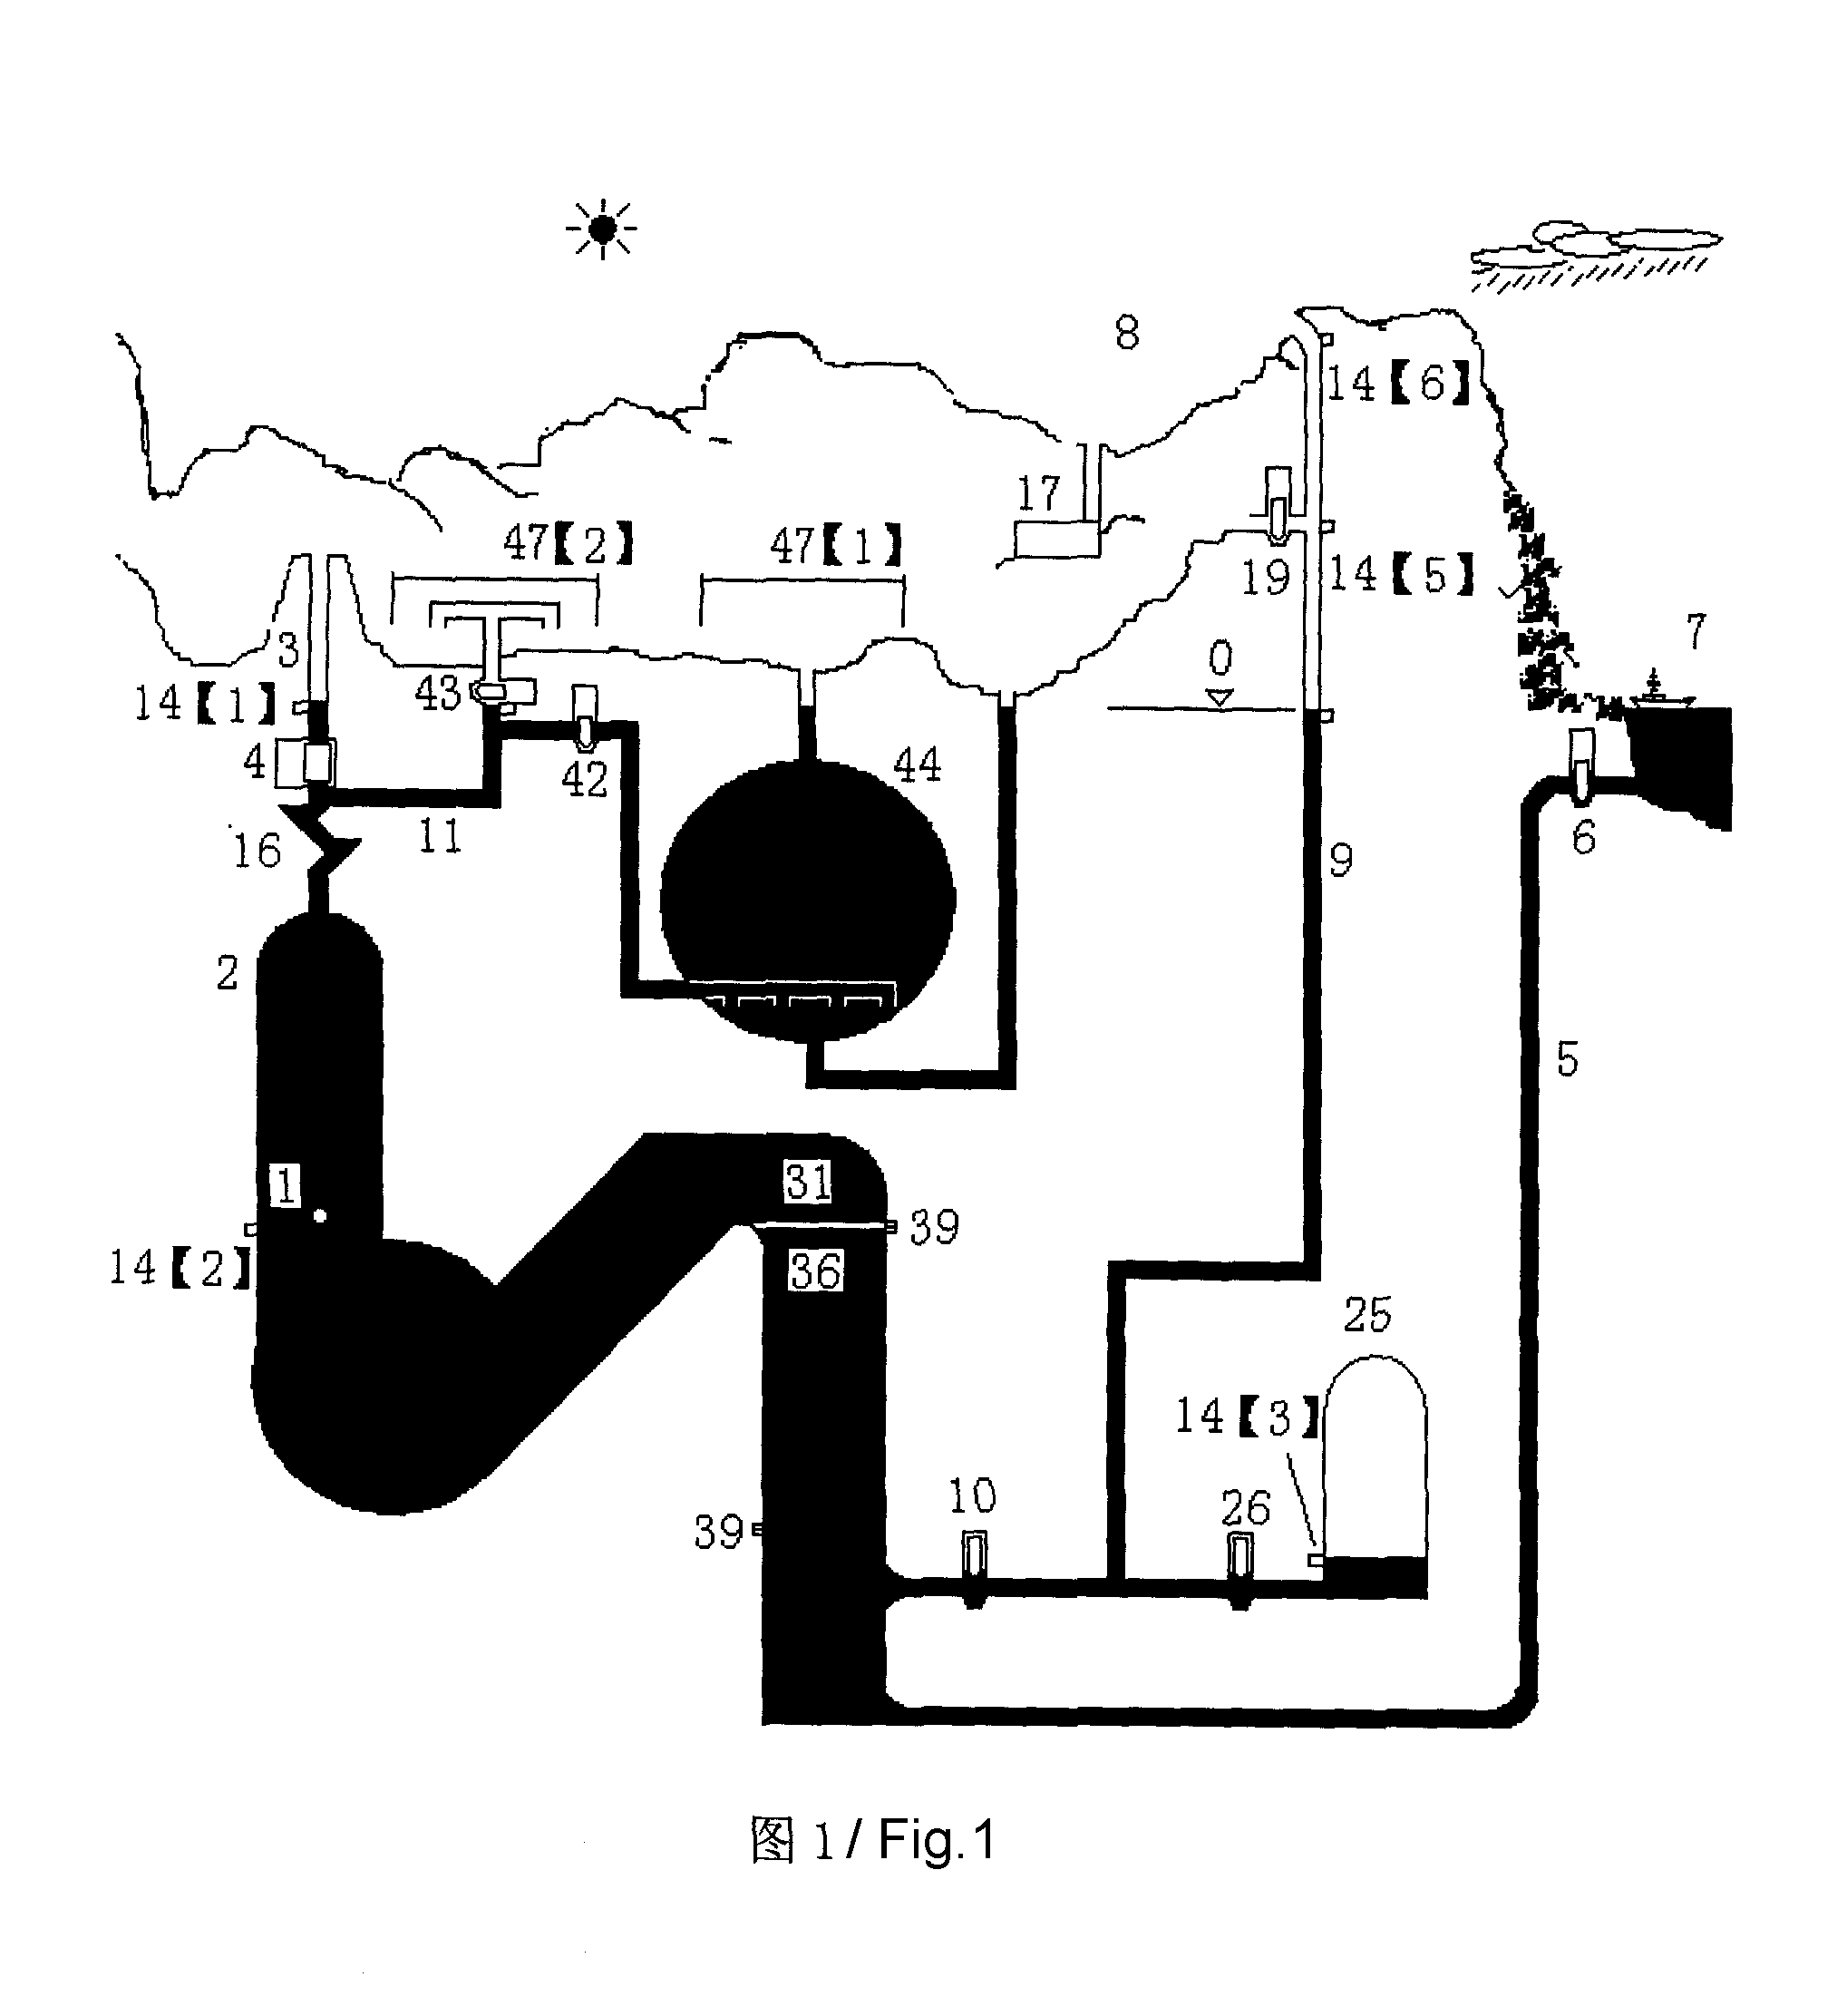 Wo2013063860a1 Nuclear Implosion Two